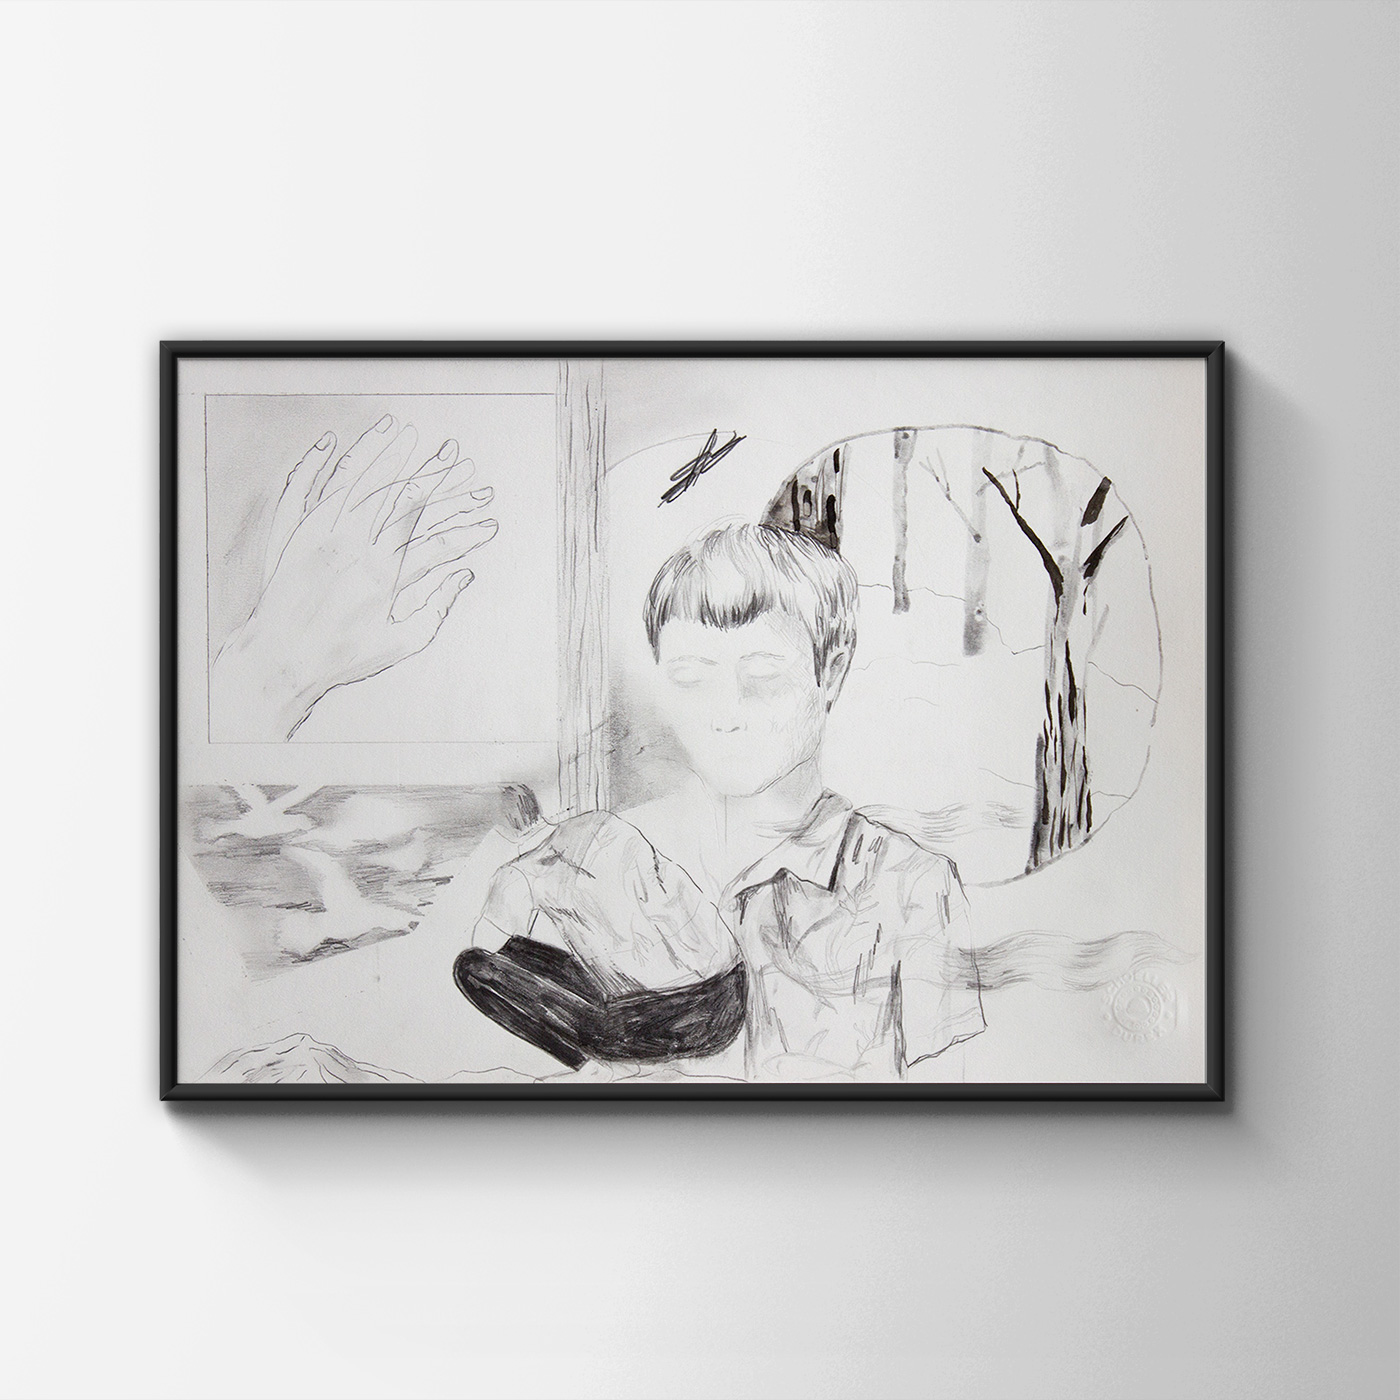 drawings, aesthetic, illustrative, monochrome, botany, nature, people, black, grey, white, charcoal, paper, pencils, autumn, black-and-white, decorative, faces, interior, interior-design, trees, Buy original high quality art. Paintings, drawings, limited edition prints & posters by talented artists.